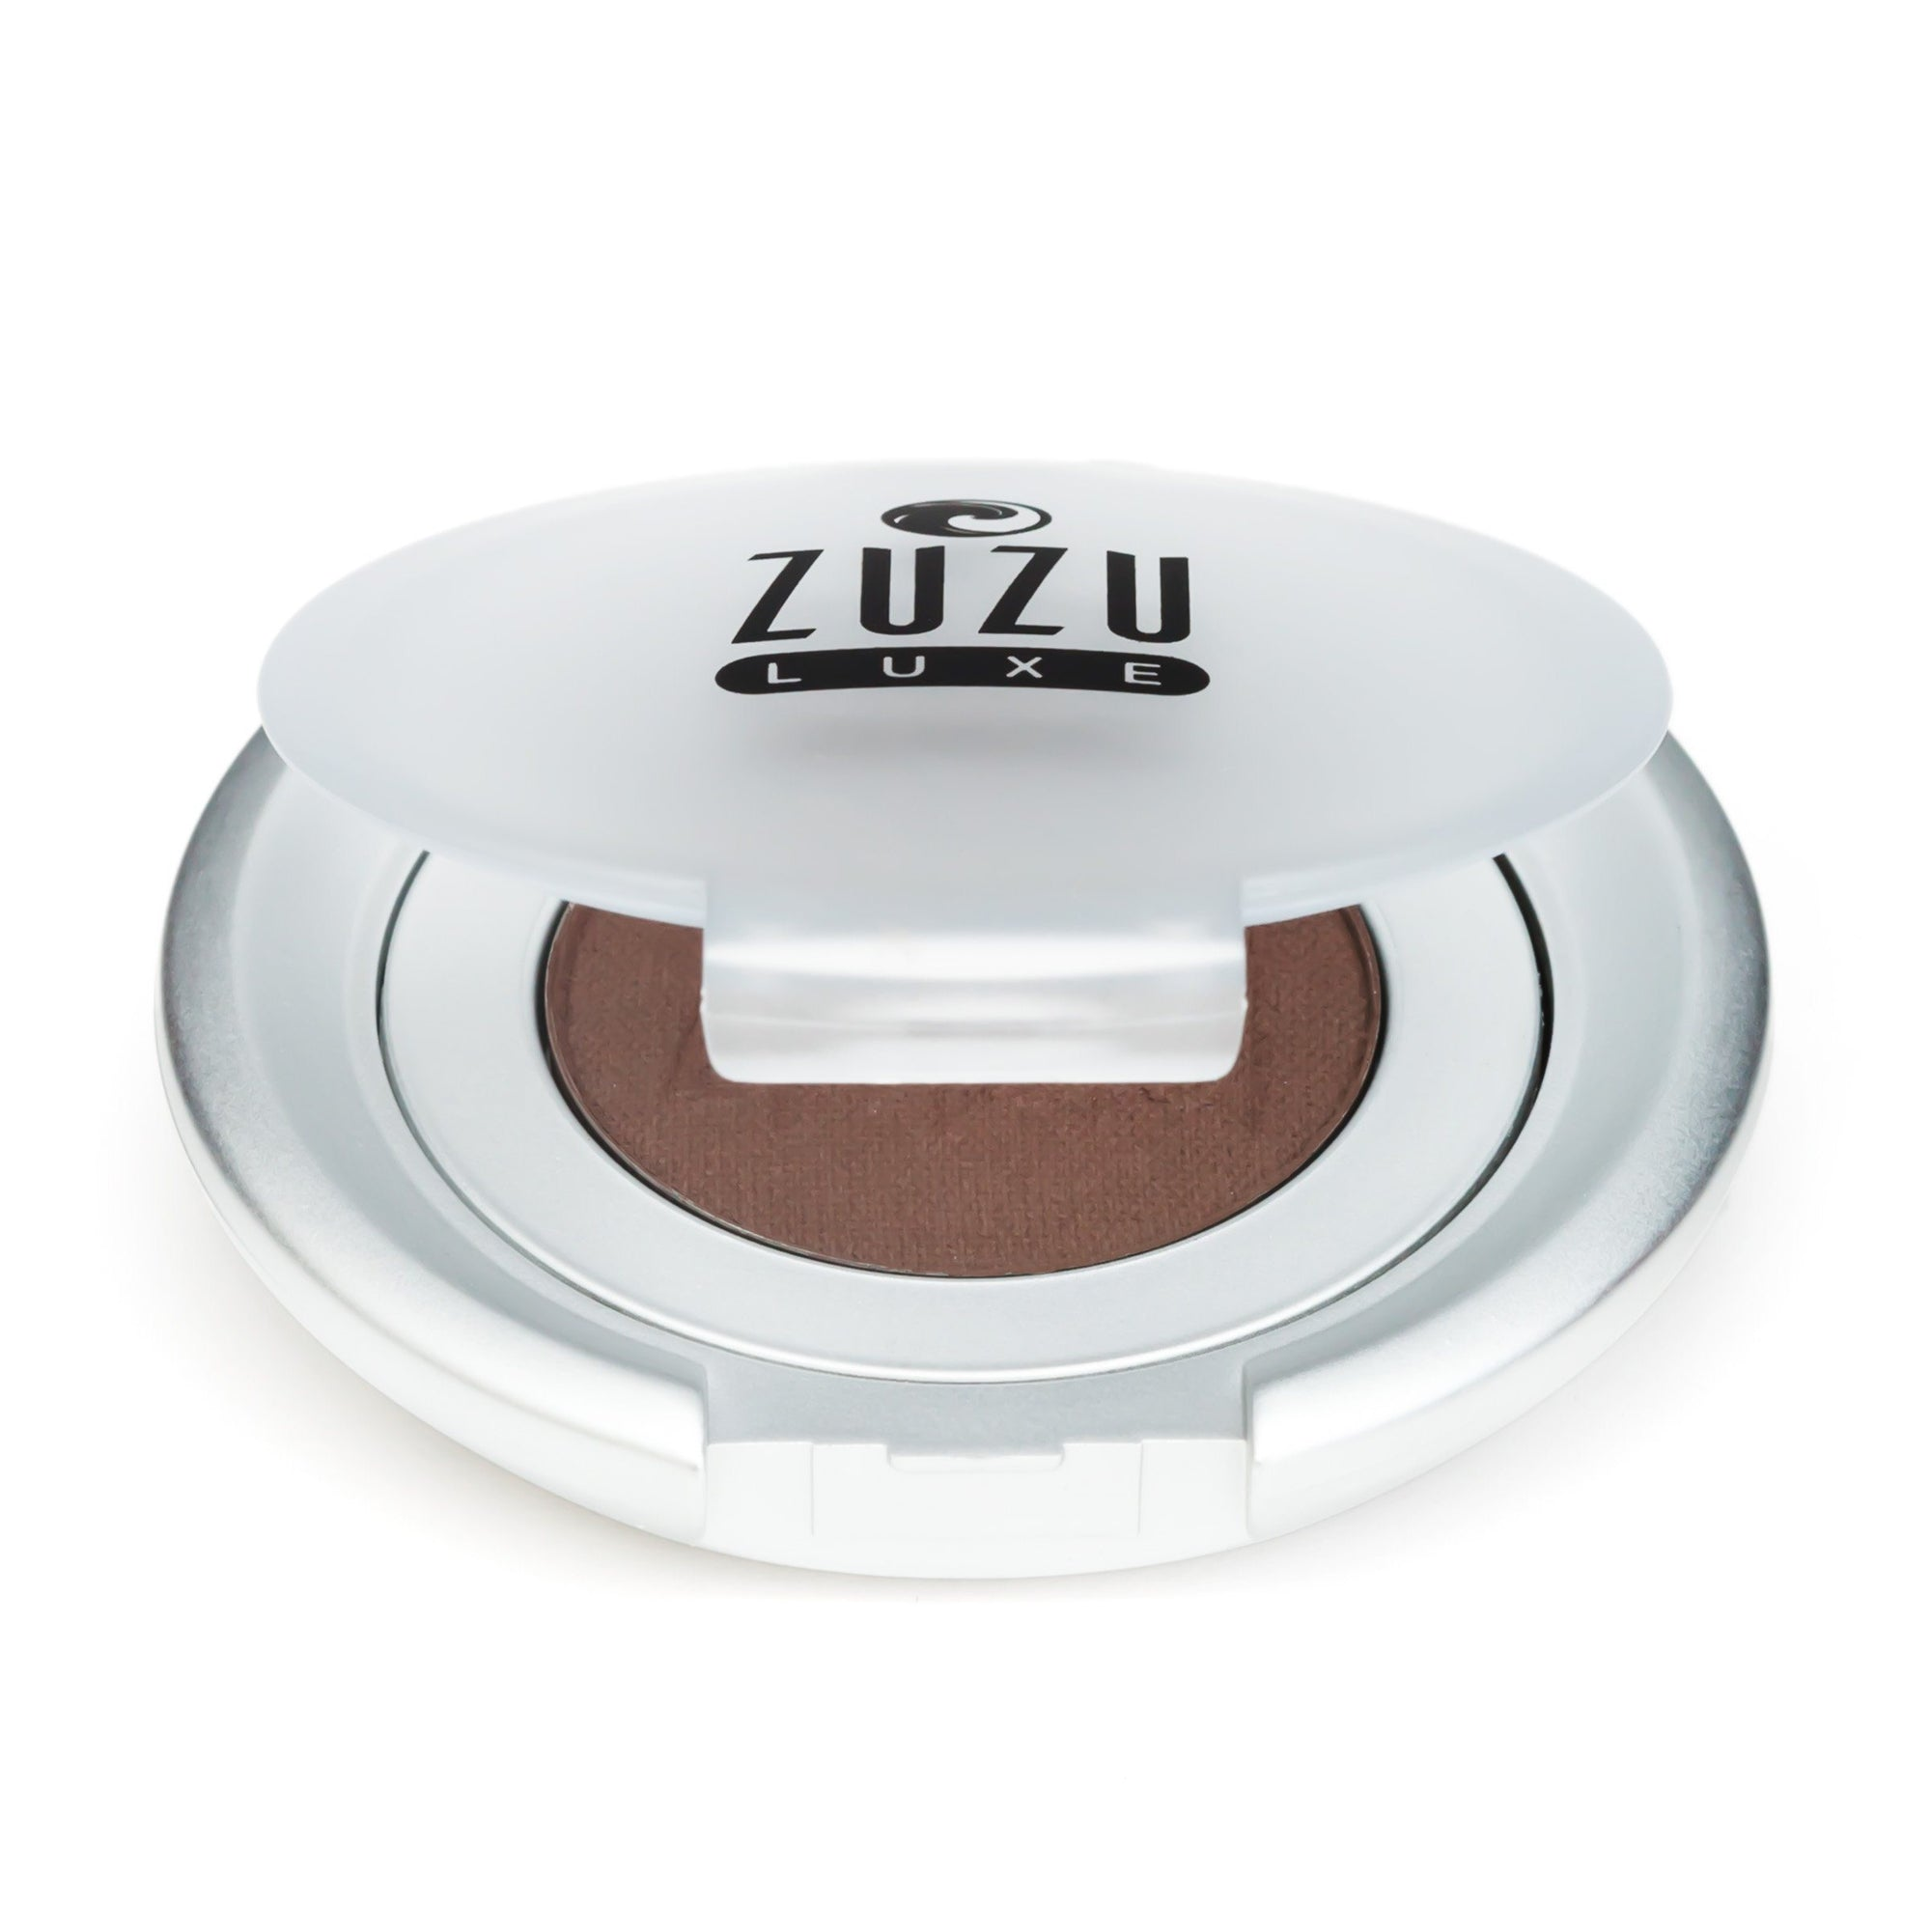 Beauty & Skin Care - Zuzu Luxe - Vegan Eyeshadow, Espresso